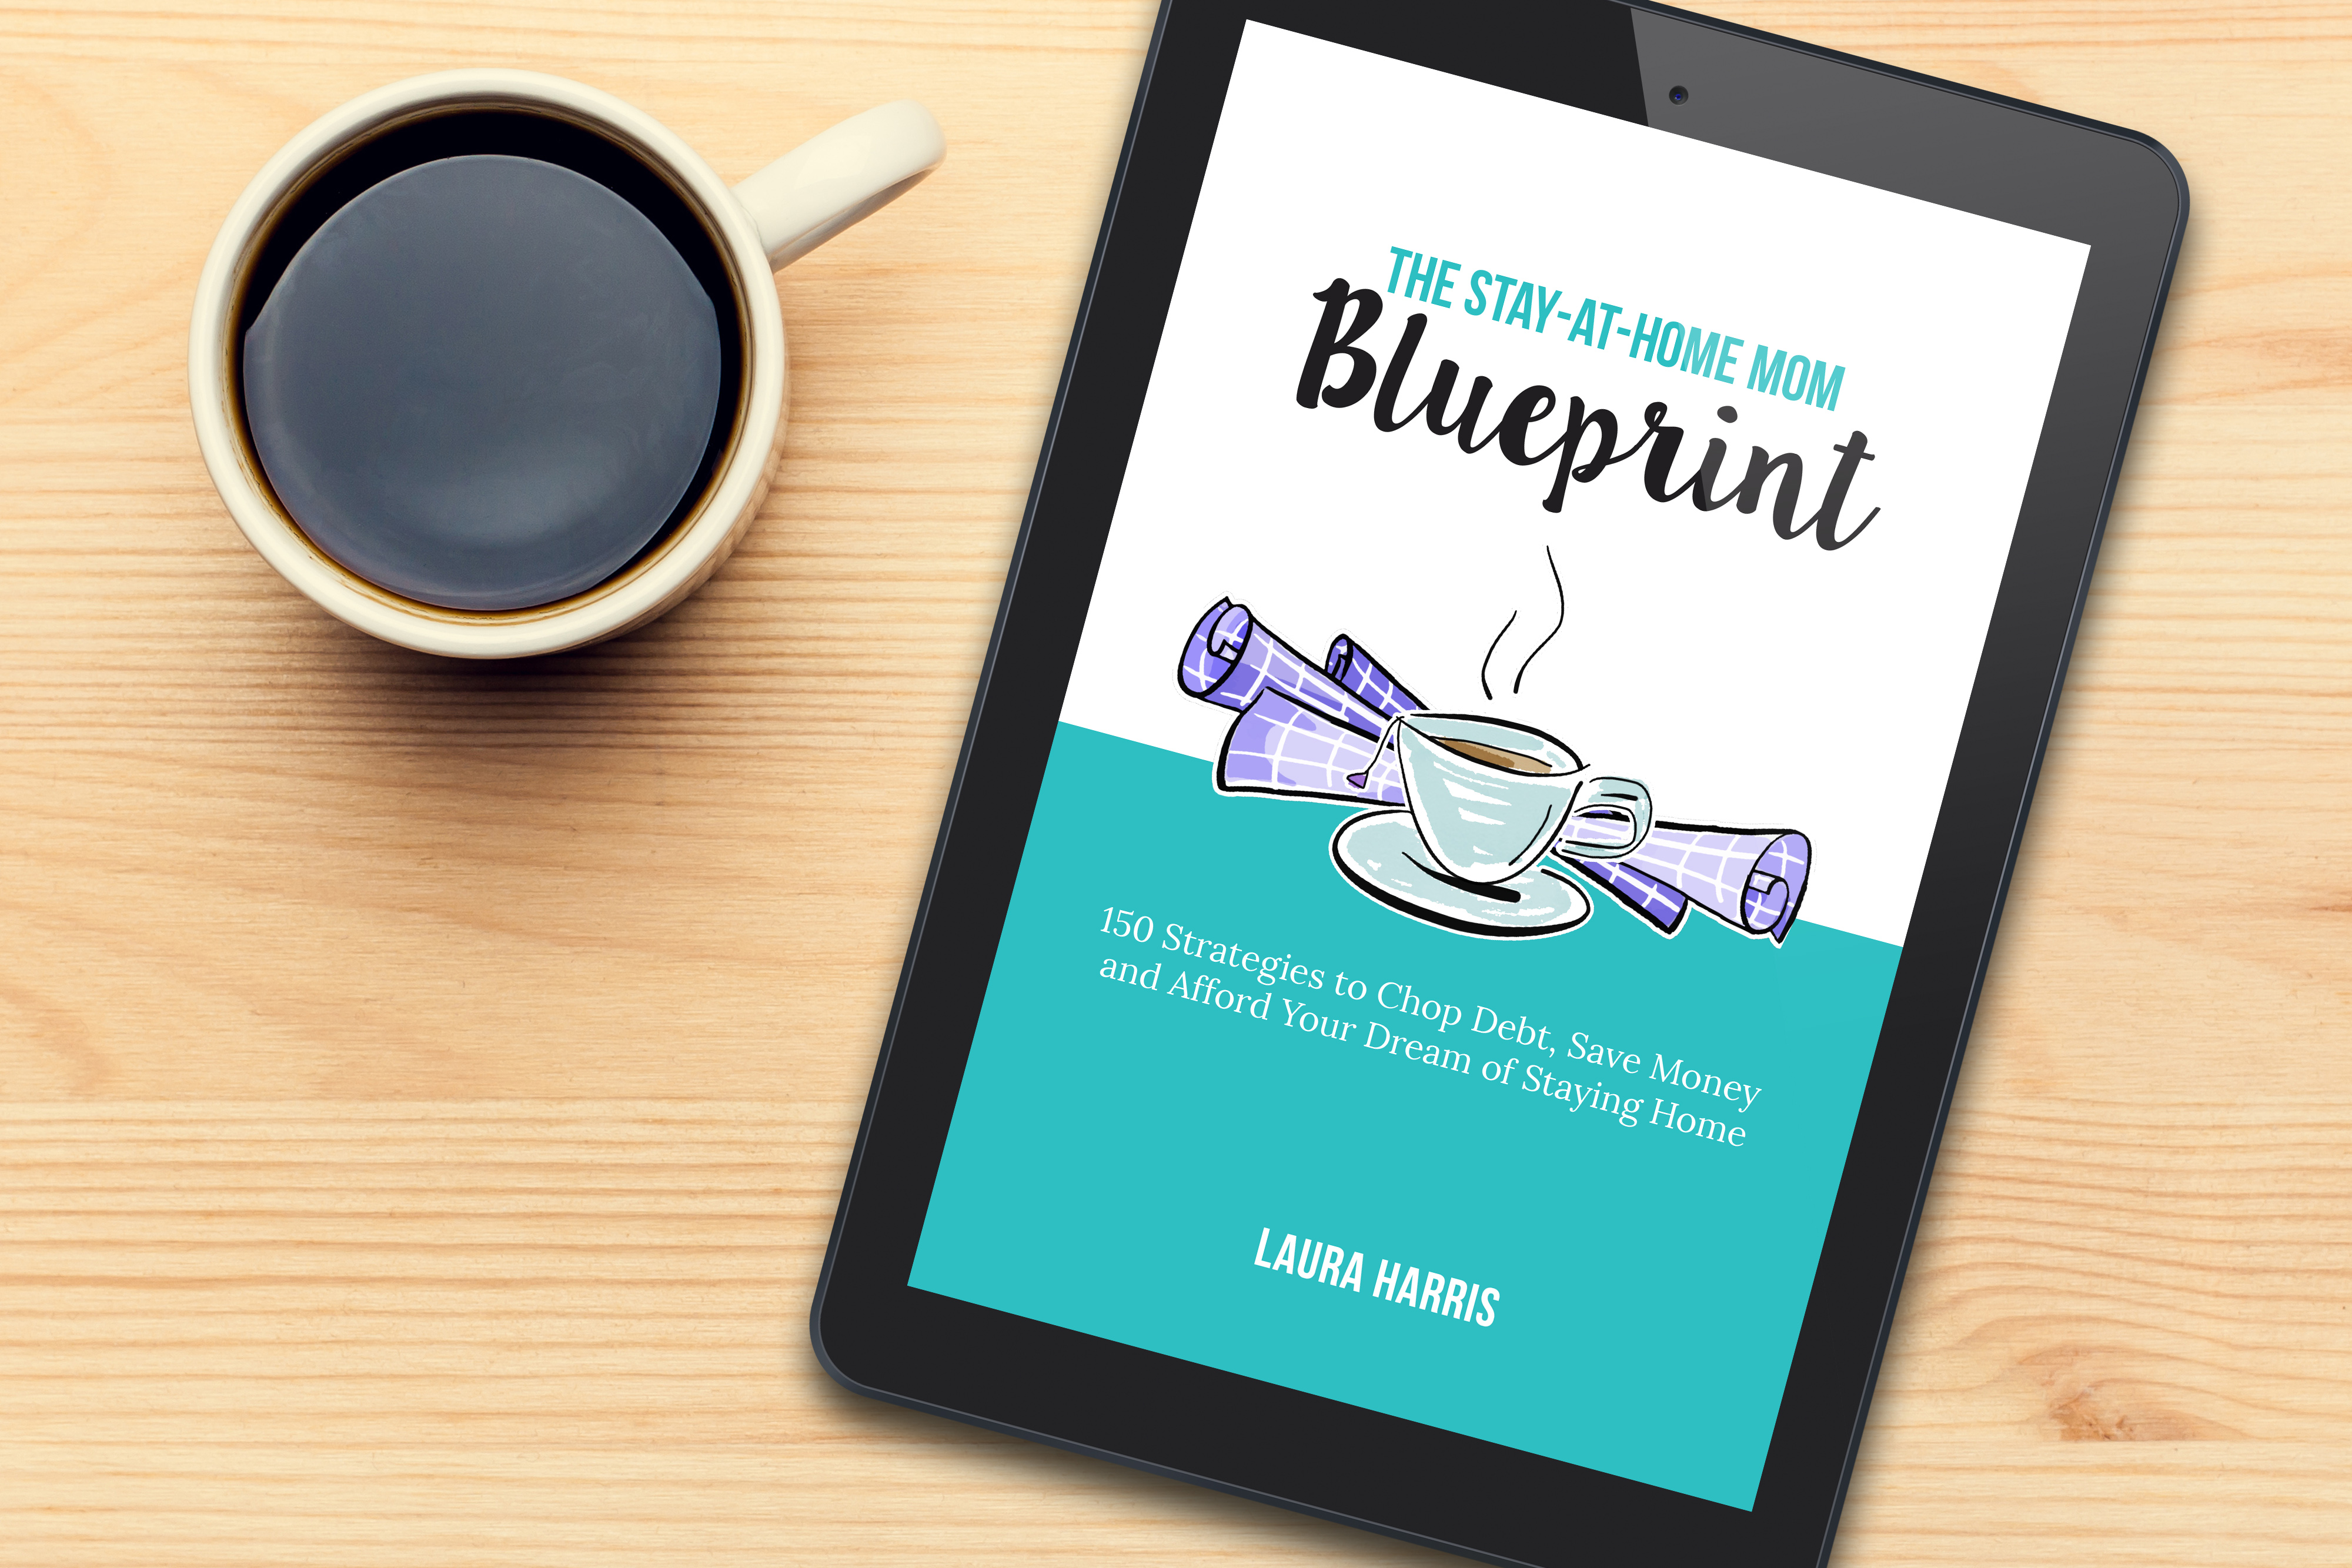 Use final60 for 60 off the stay at home mom blueprint ebook use final60 for 60 off the stay at home mom blueprint ebook final sale laura harris 2018 04 09t1426290000 malvernweather Gallery